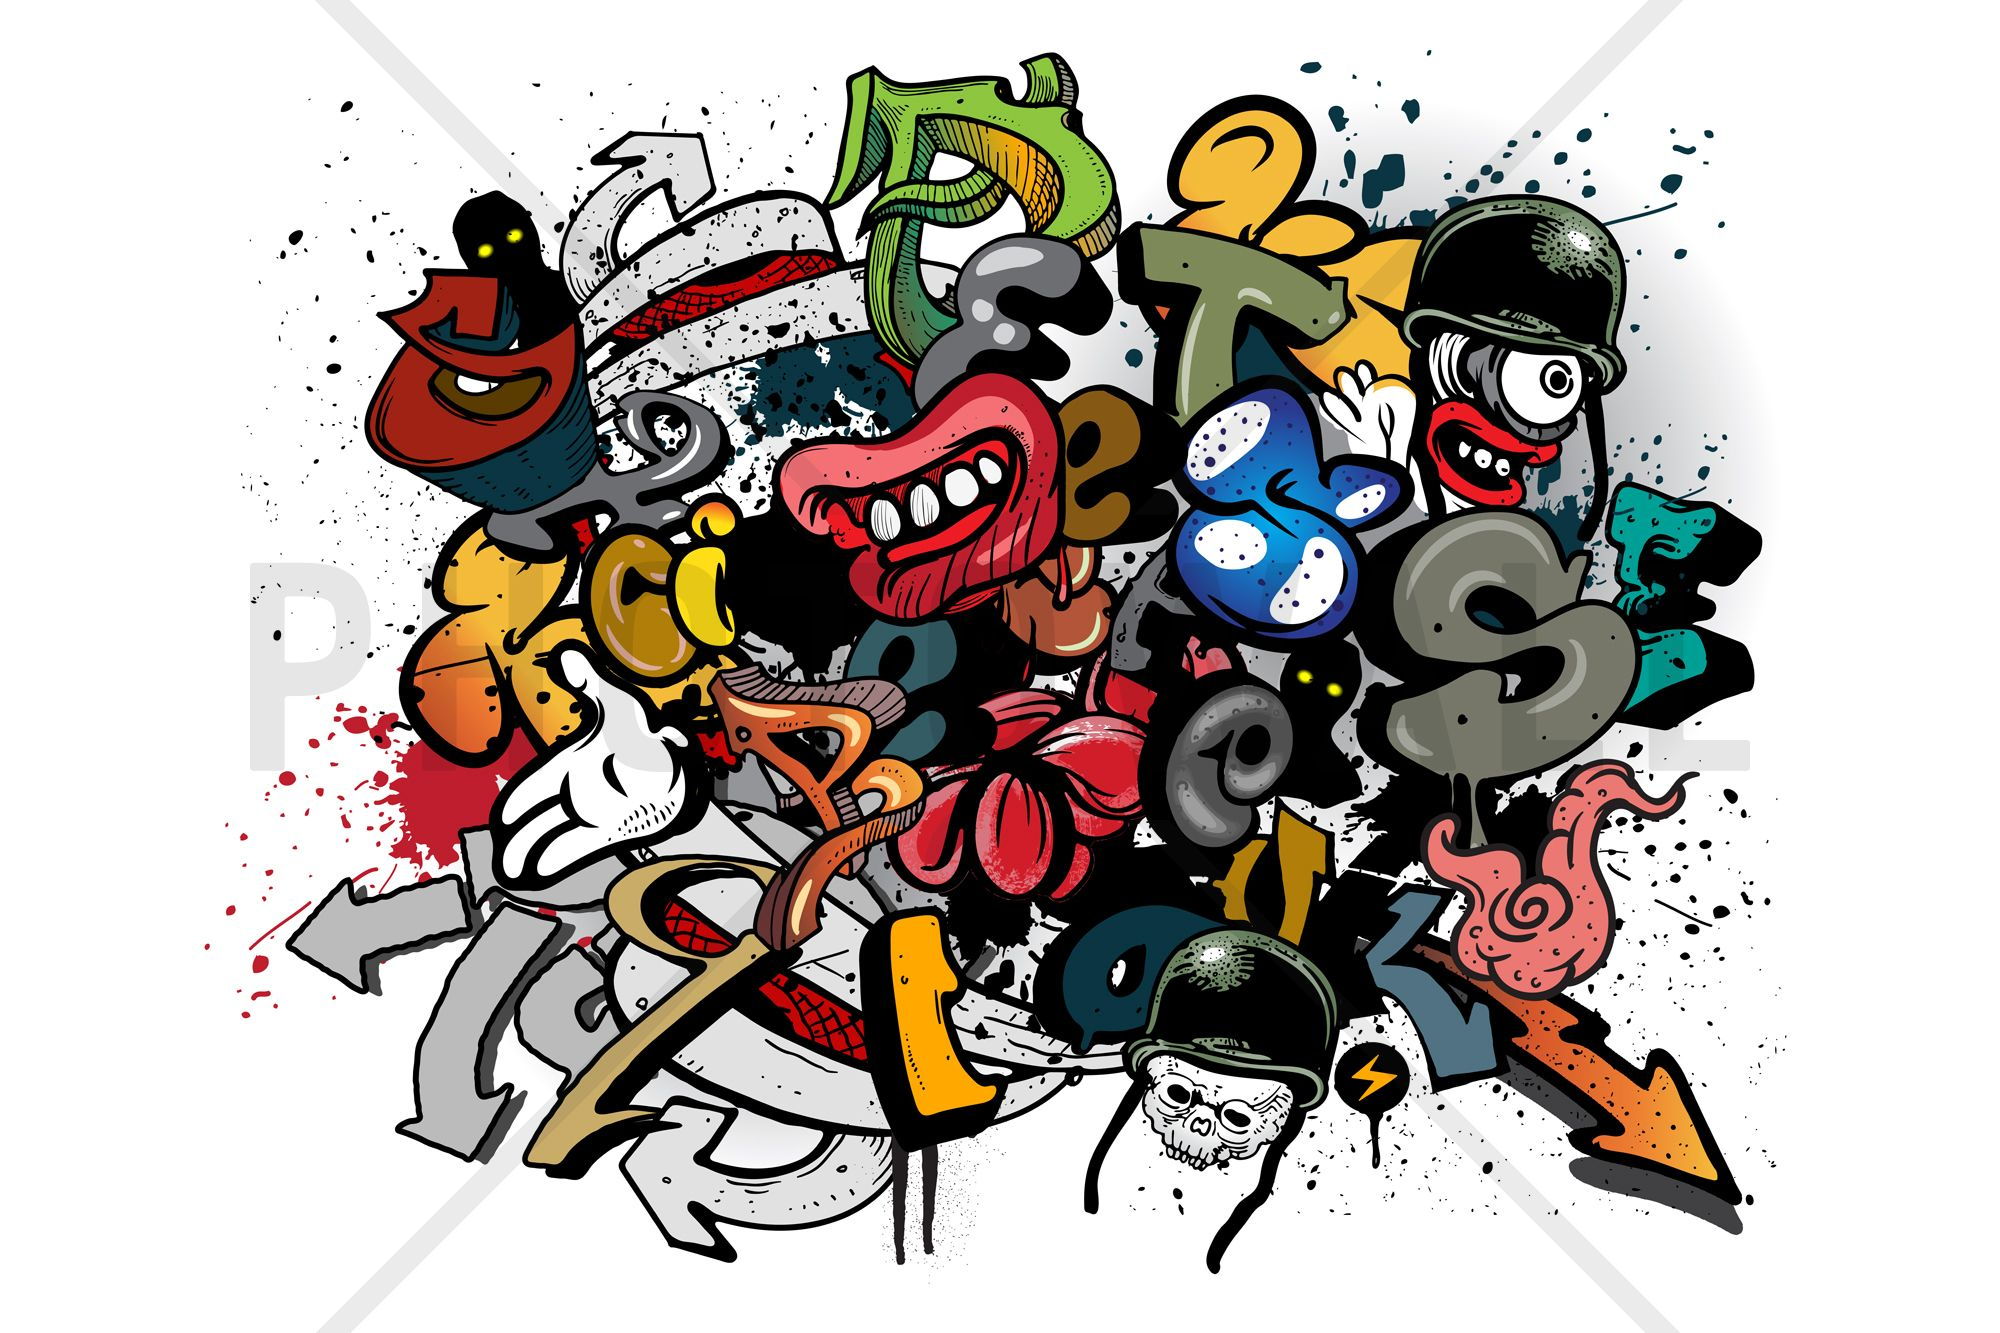 Graffiti elements wall mural photo wallpaper - Graffitis en dormitorios ...